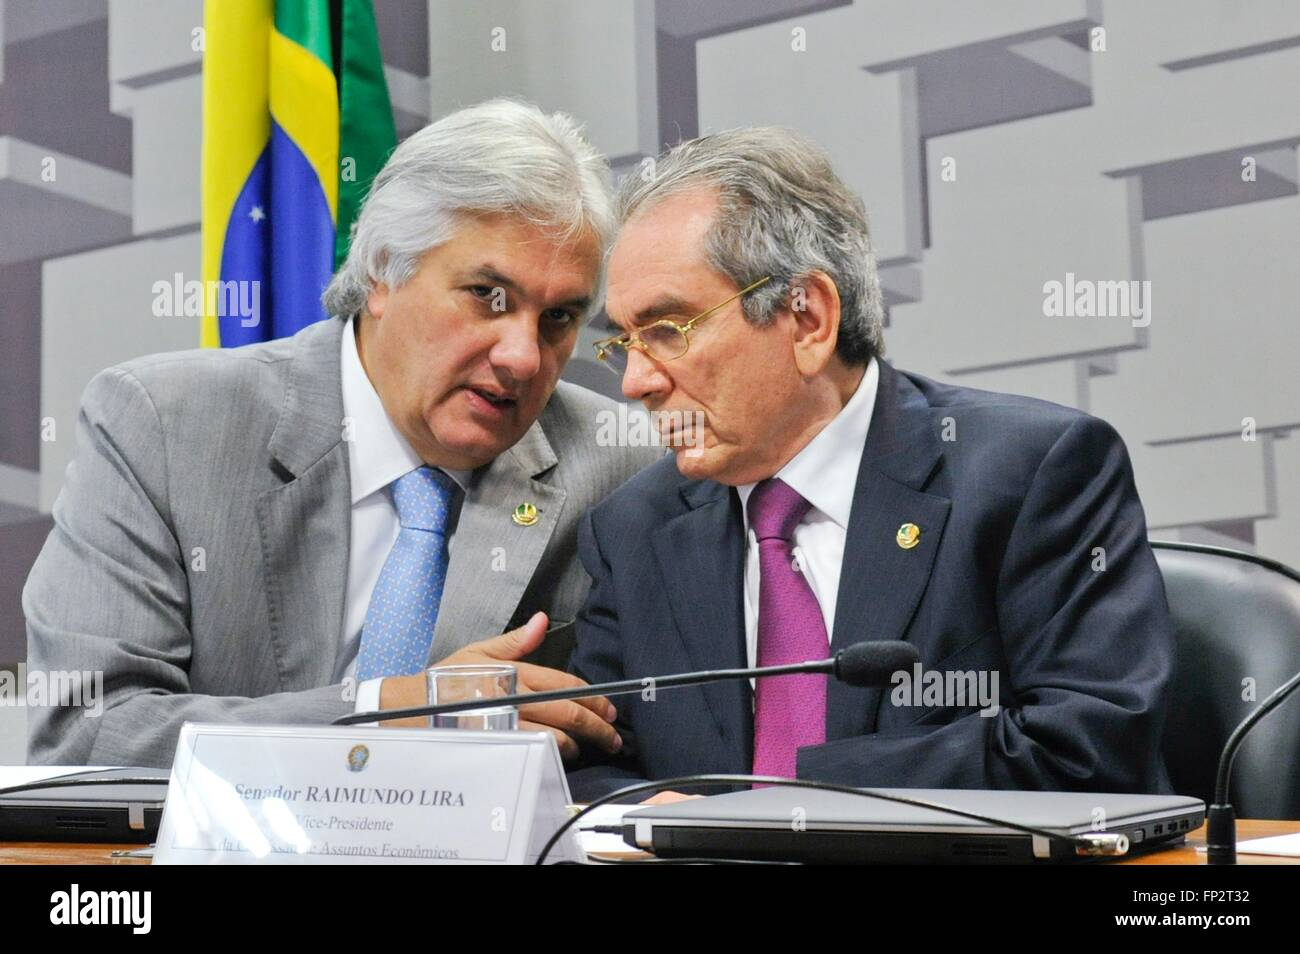 Brazilian Senator Delcidio Amaral, left, speaks with Senator Raimundo Lira during an economic commission hearing Stock Photo